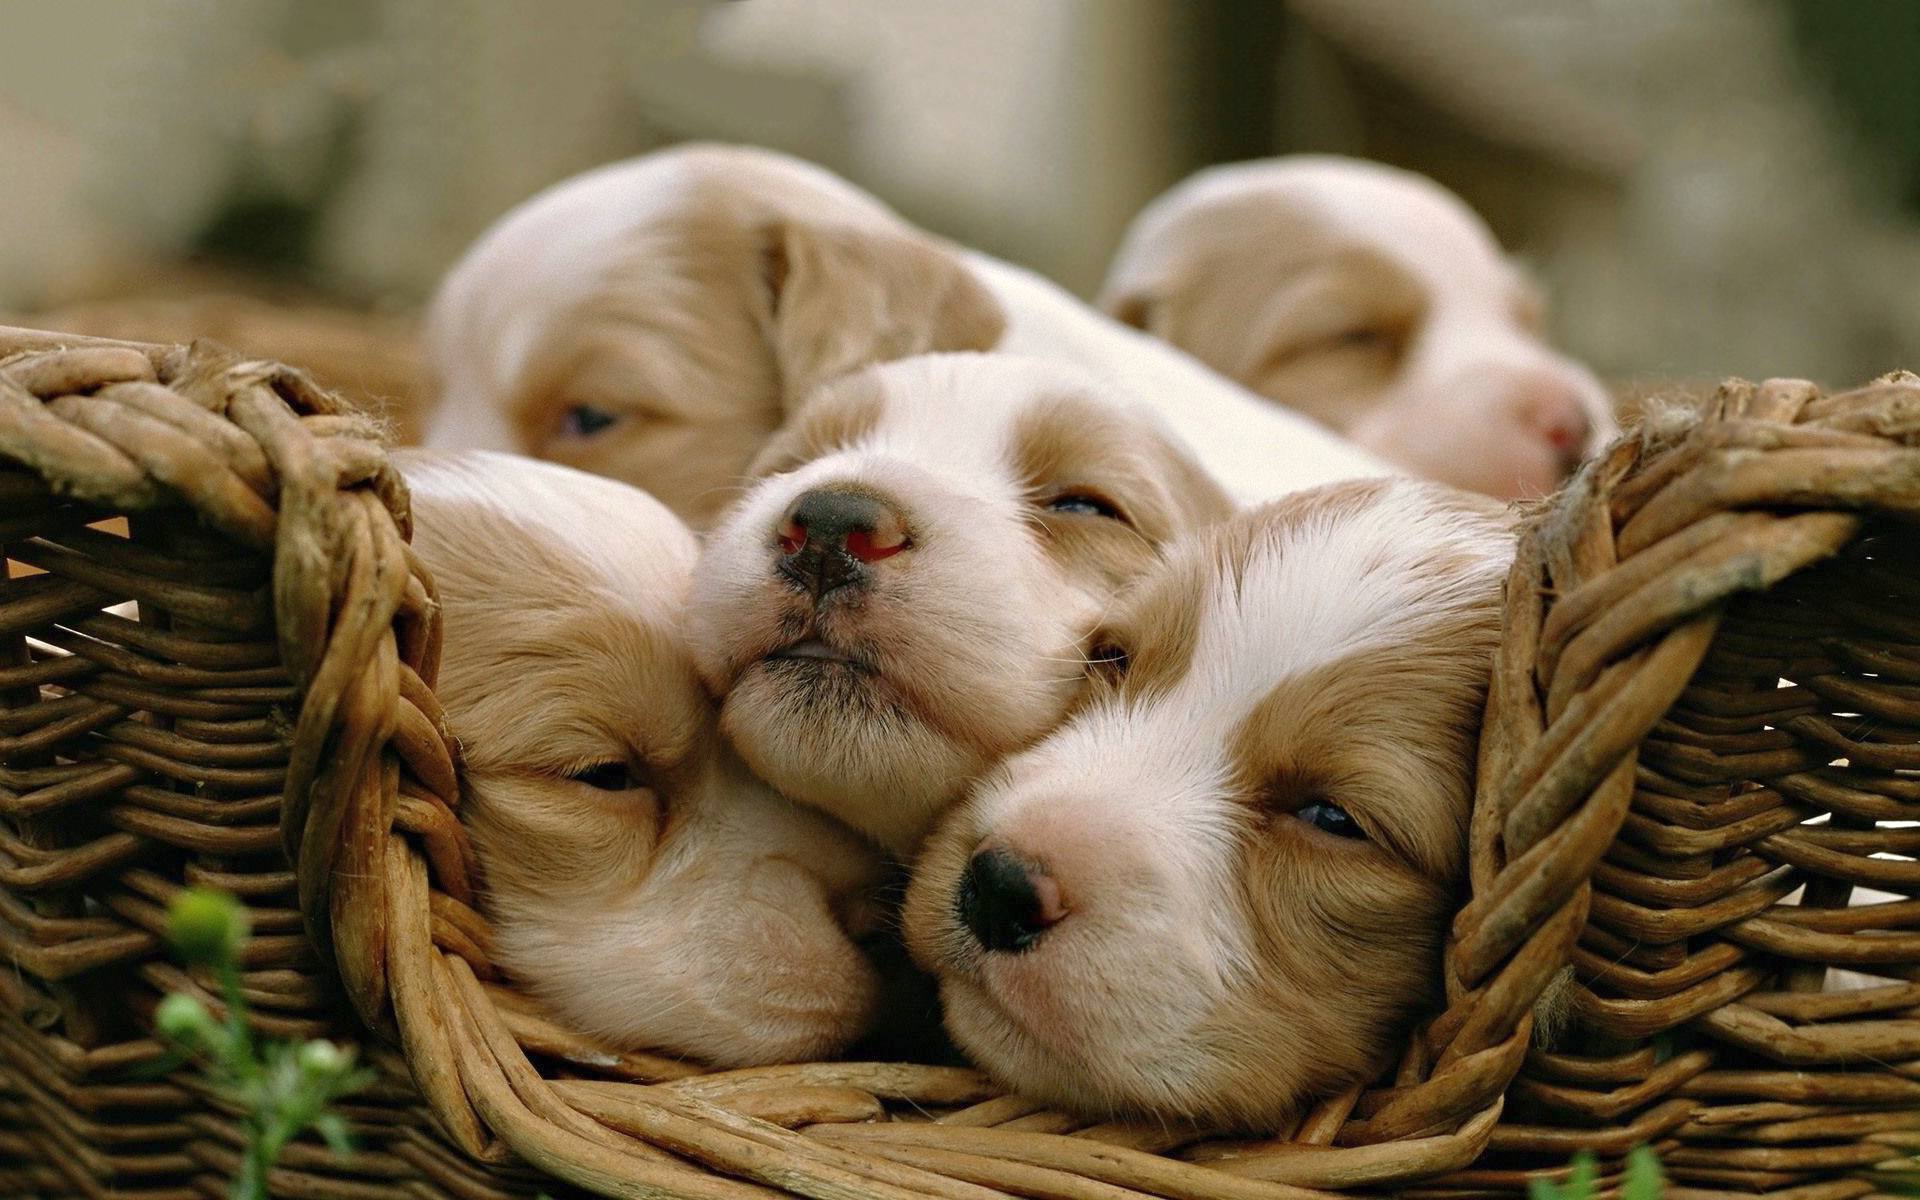 puppies cute adorable